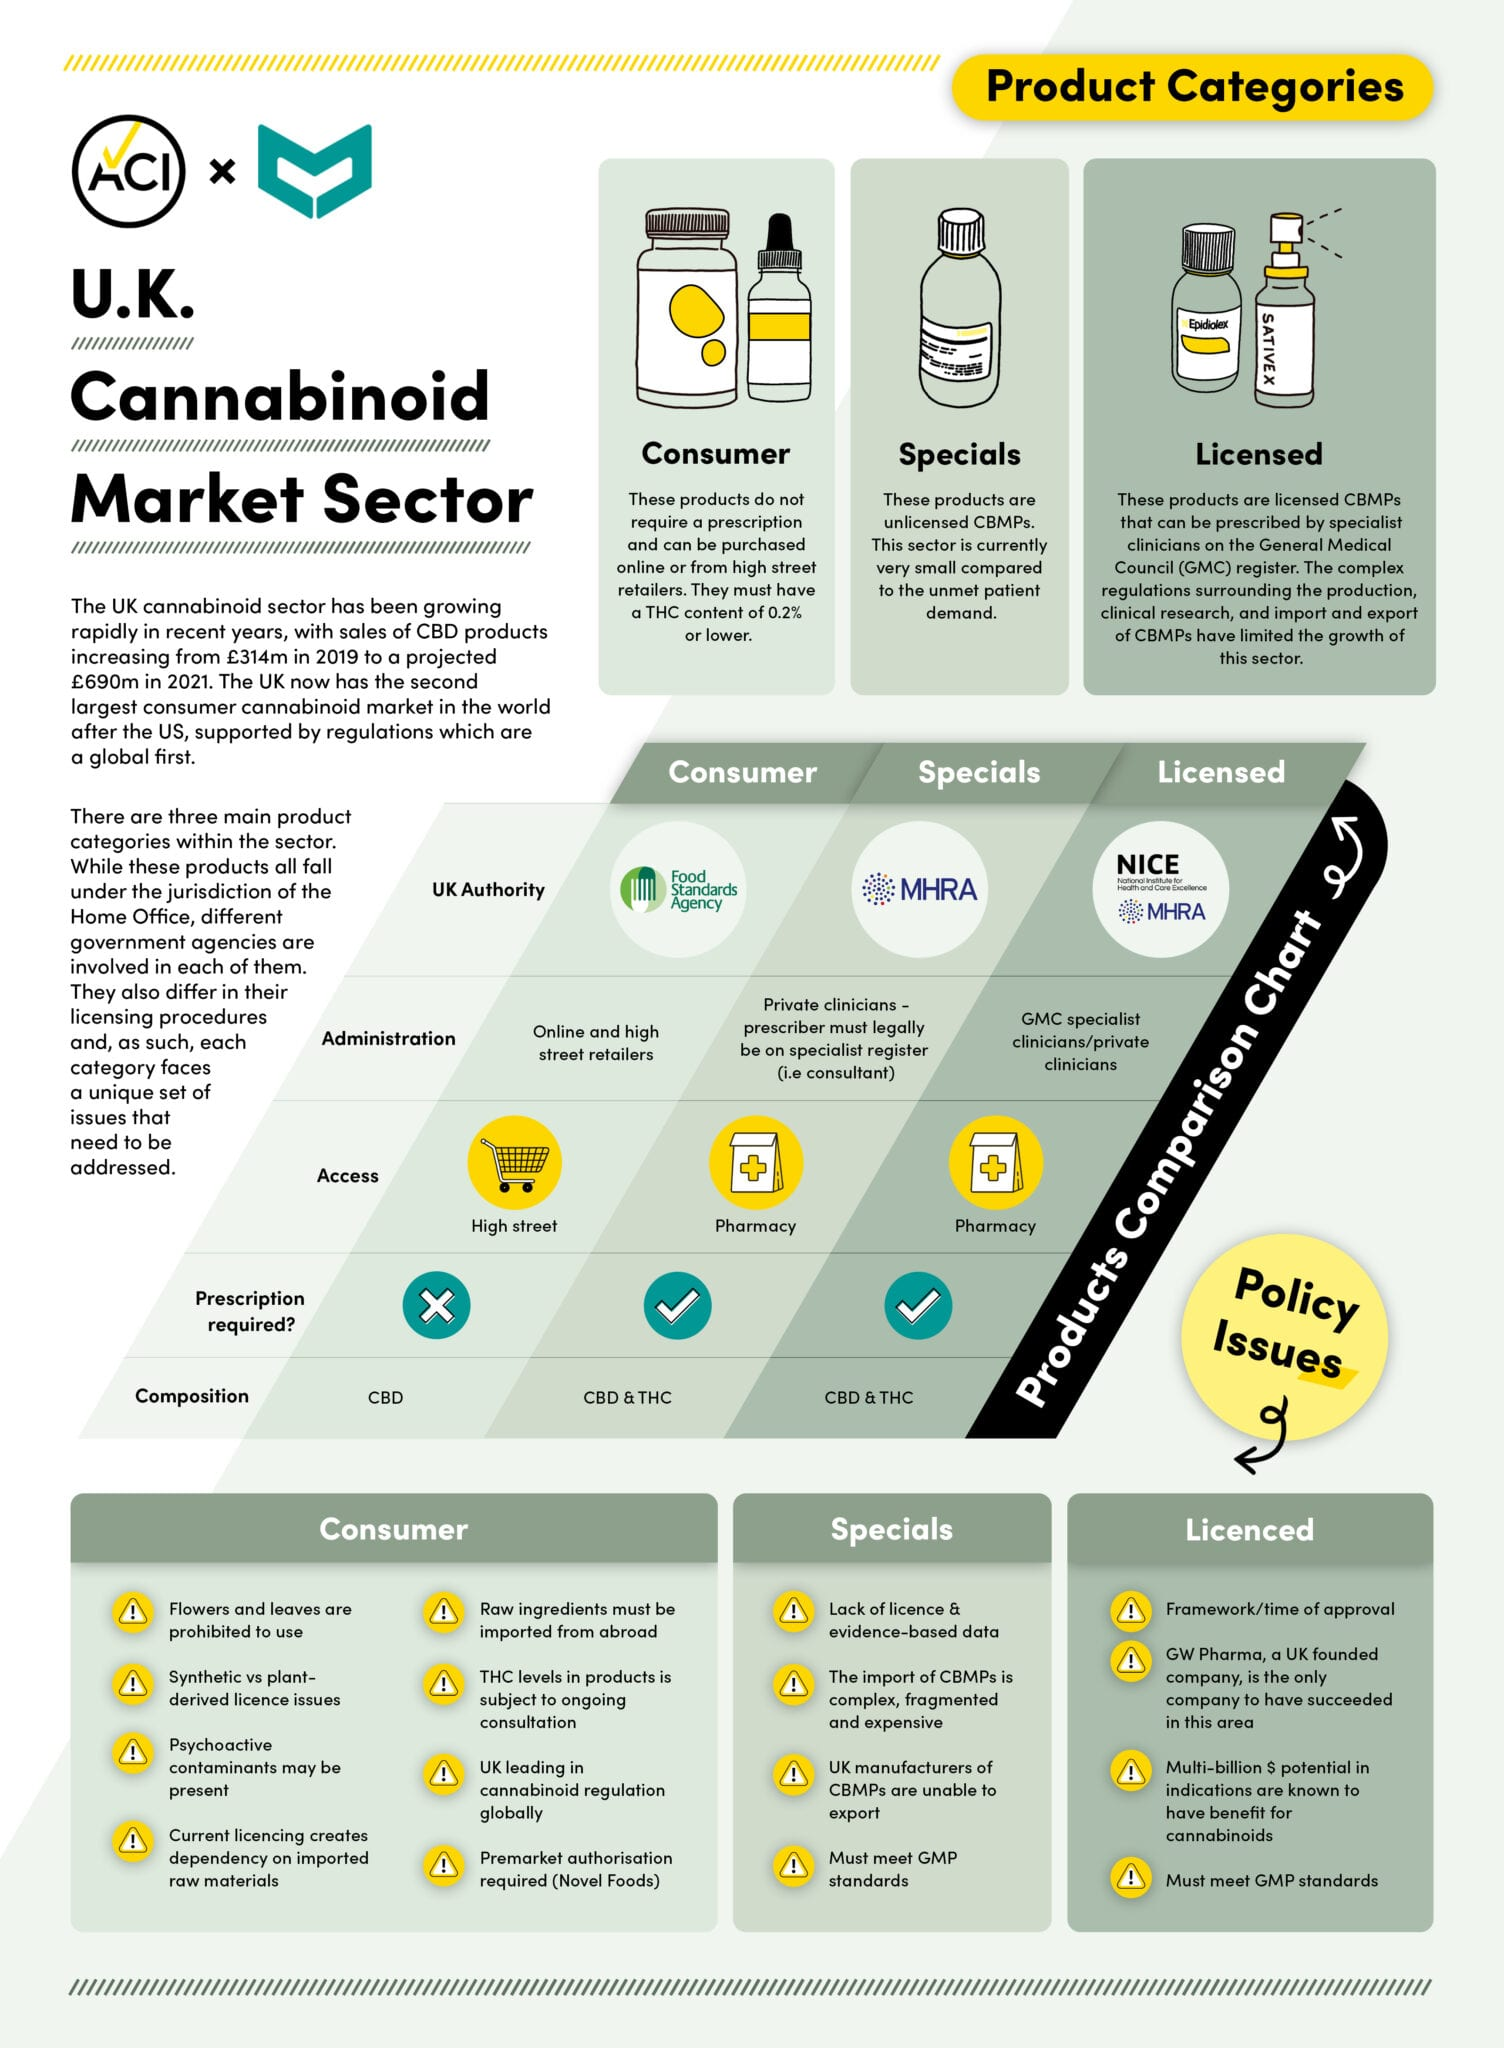 UK task force recommends moving cannabis licensing to health departments - infographic